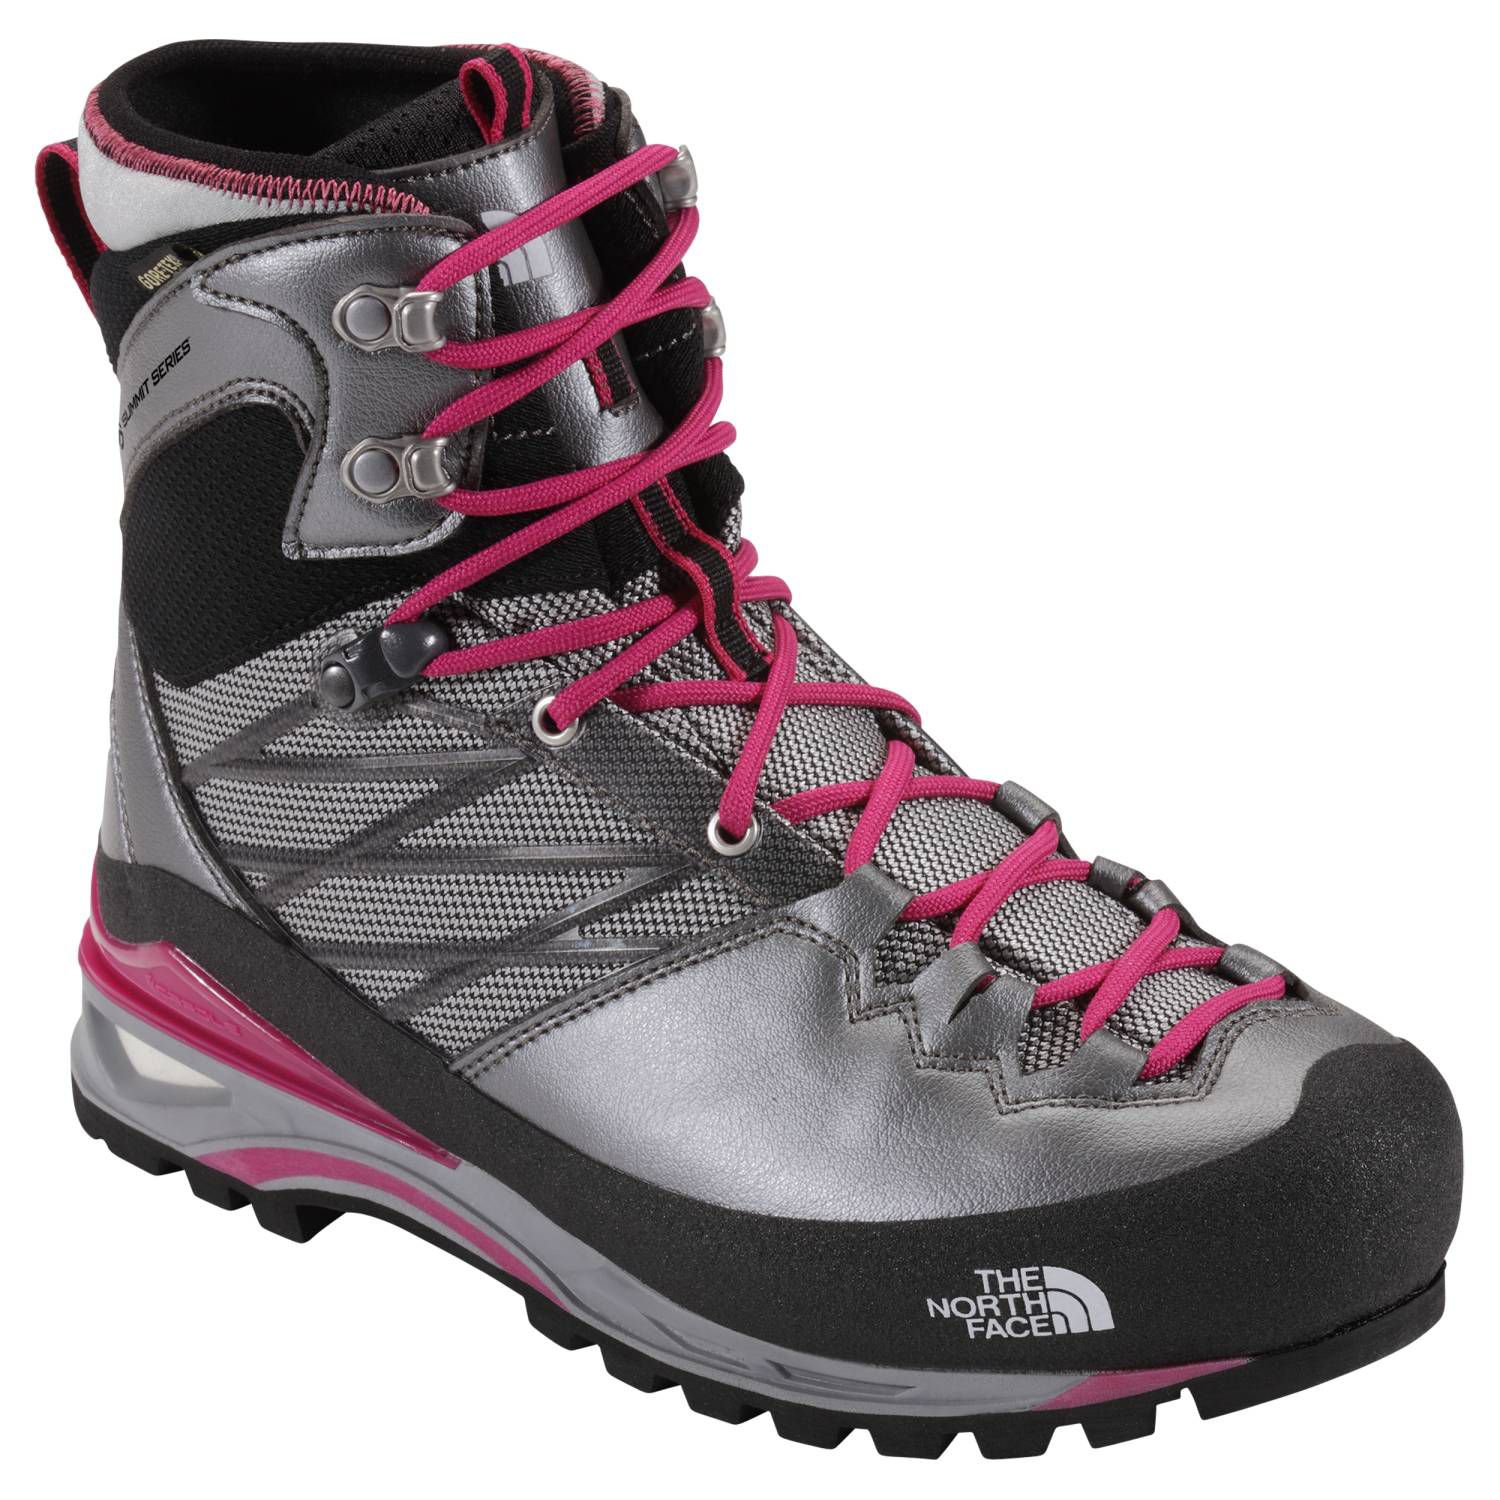 3376bf39ced The North Face Verto S4K GTX Boot - Women's